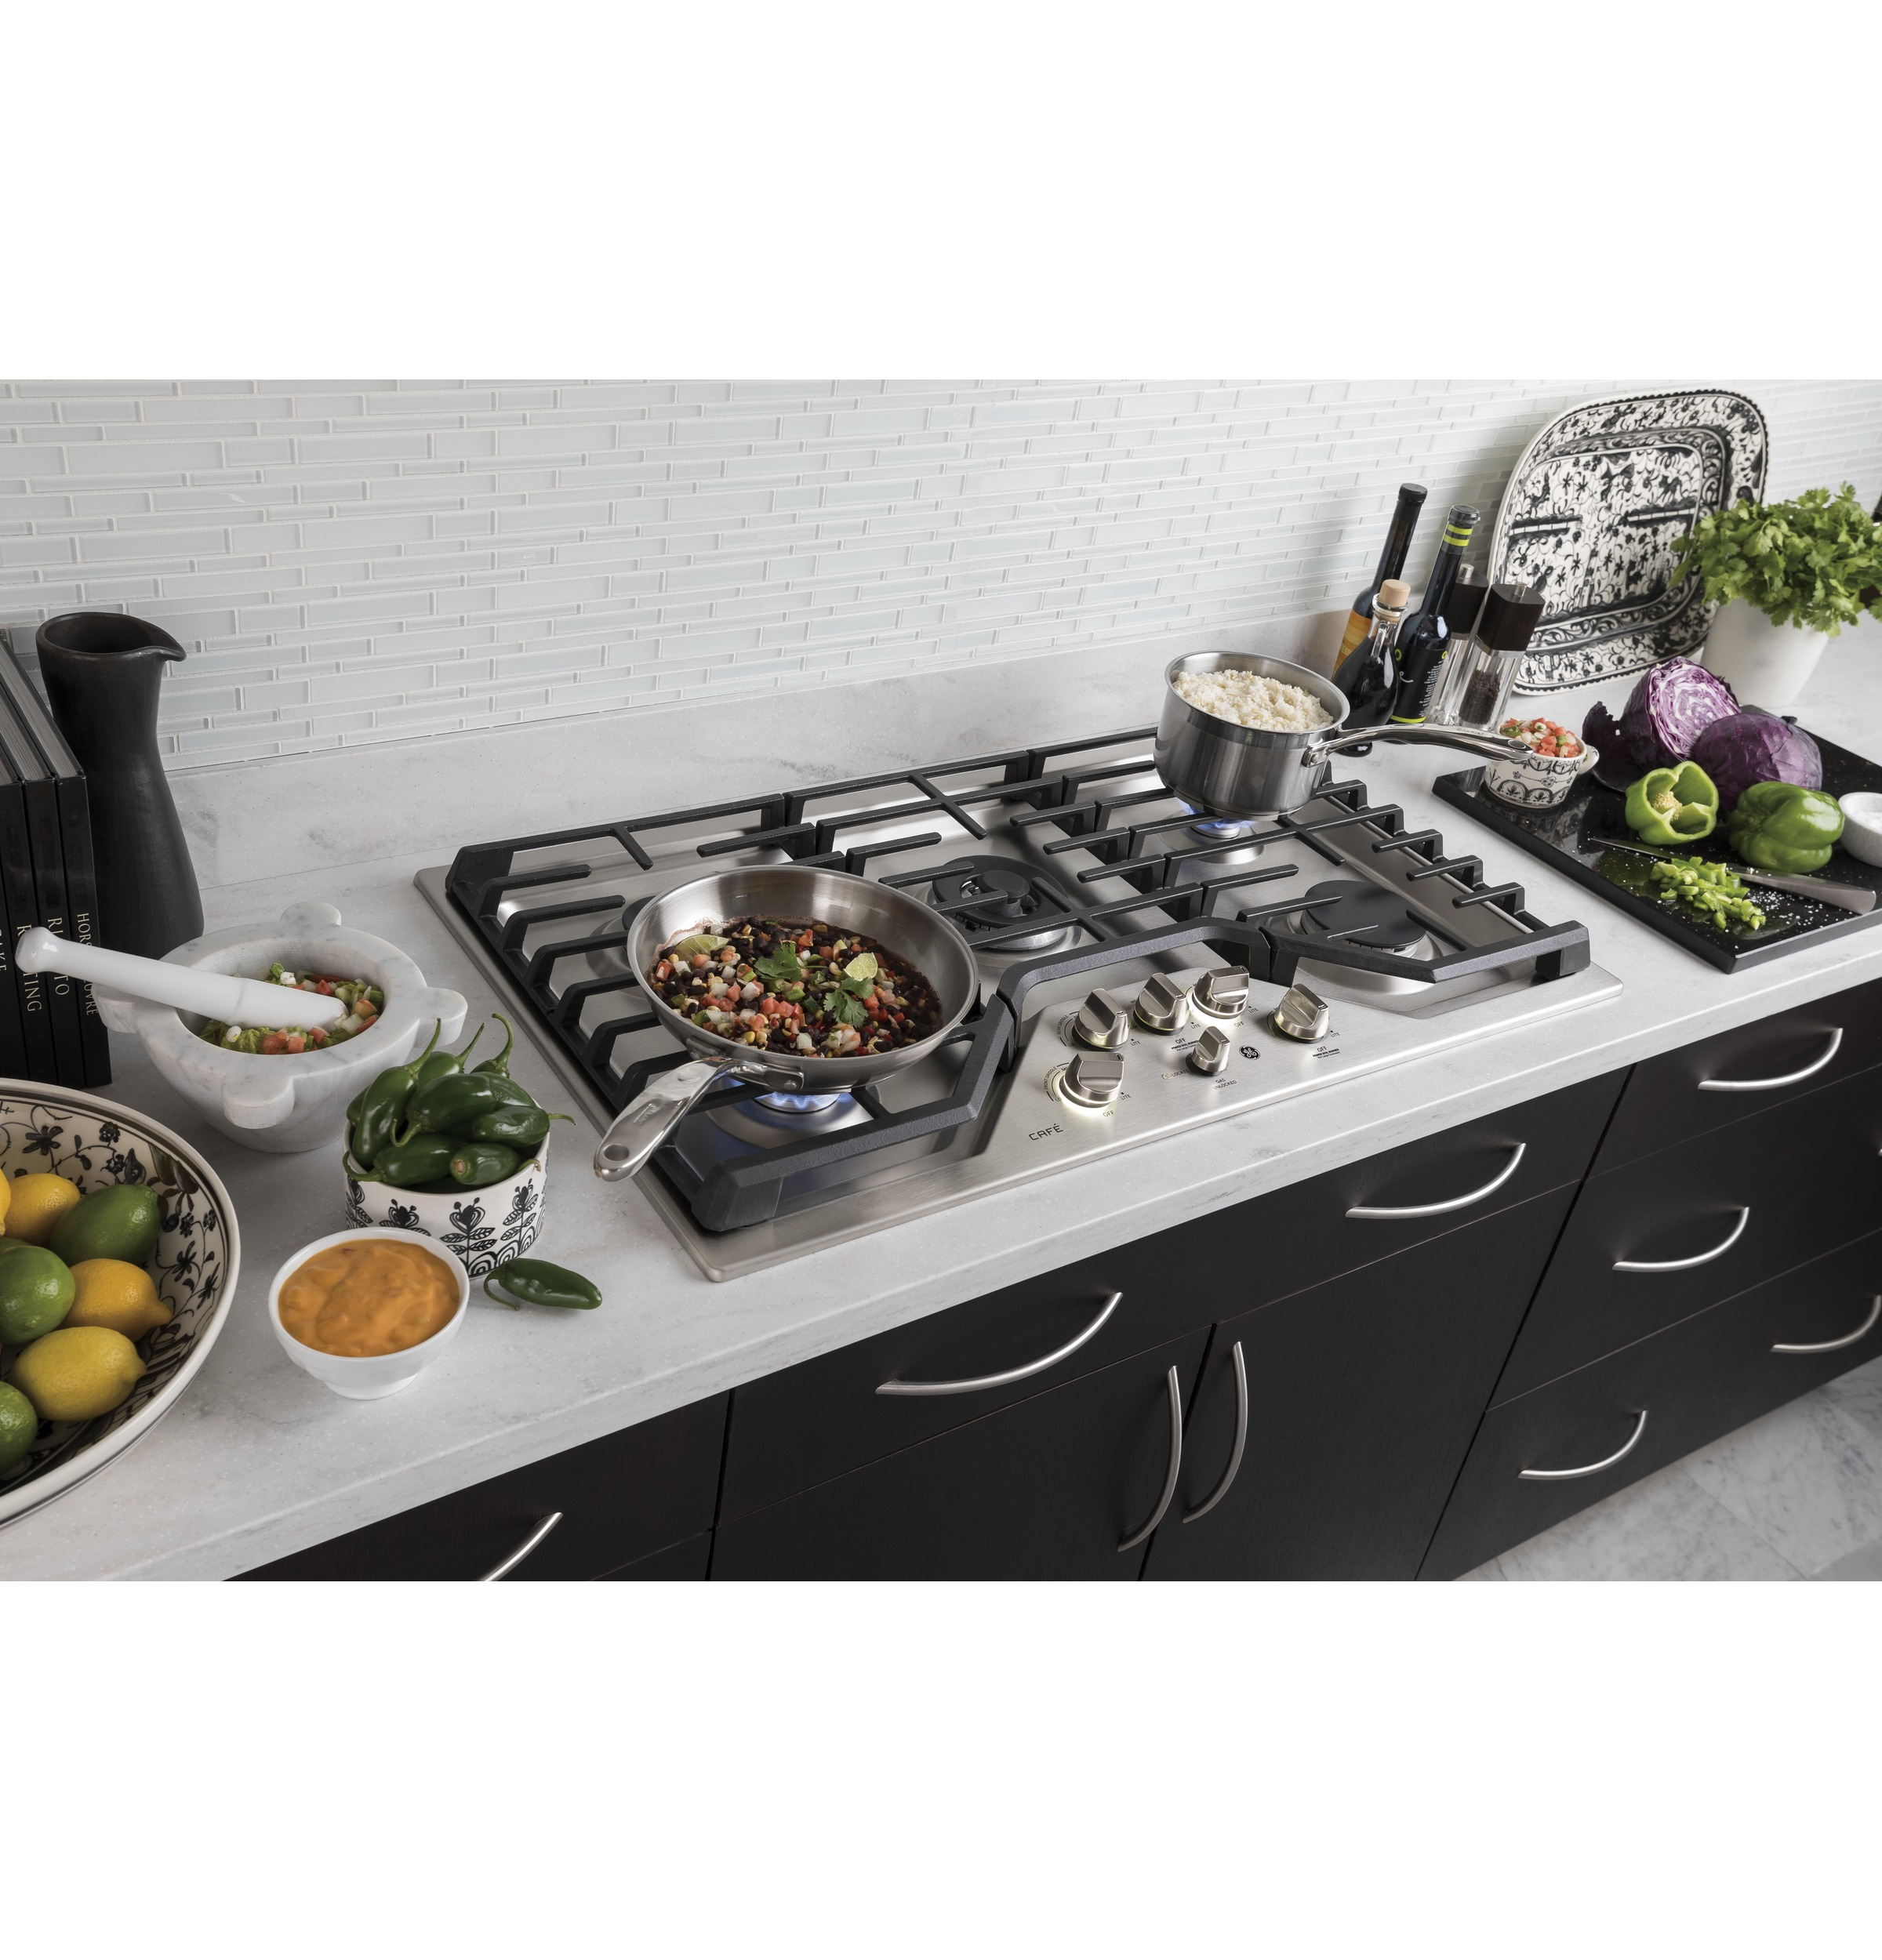 GAS COOKTOPS - HOME IMPROVEMENT OUTLET